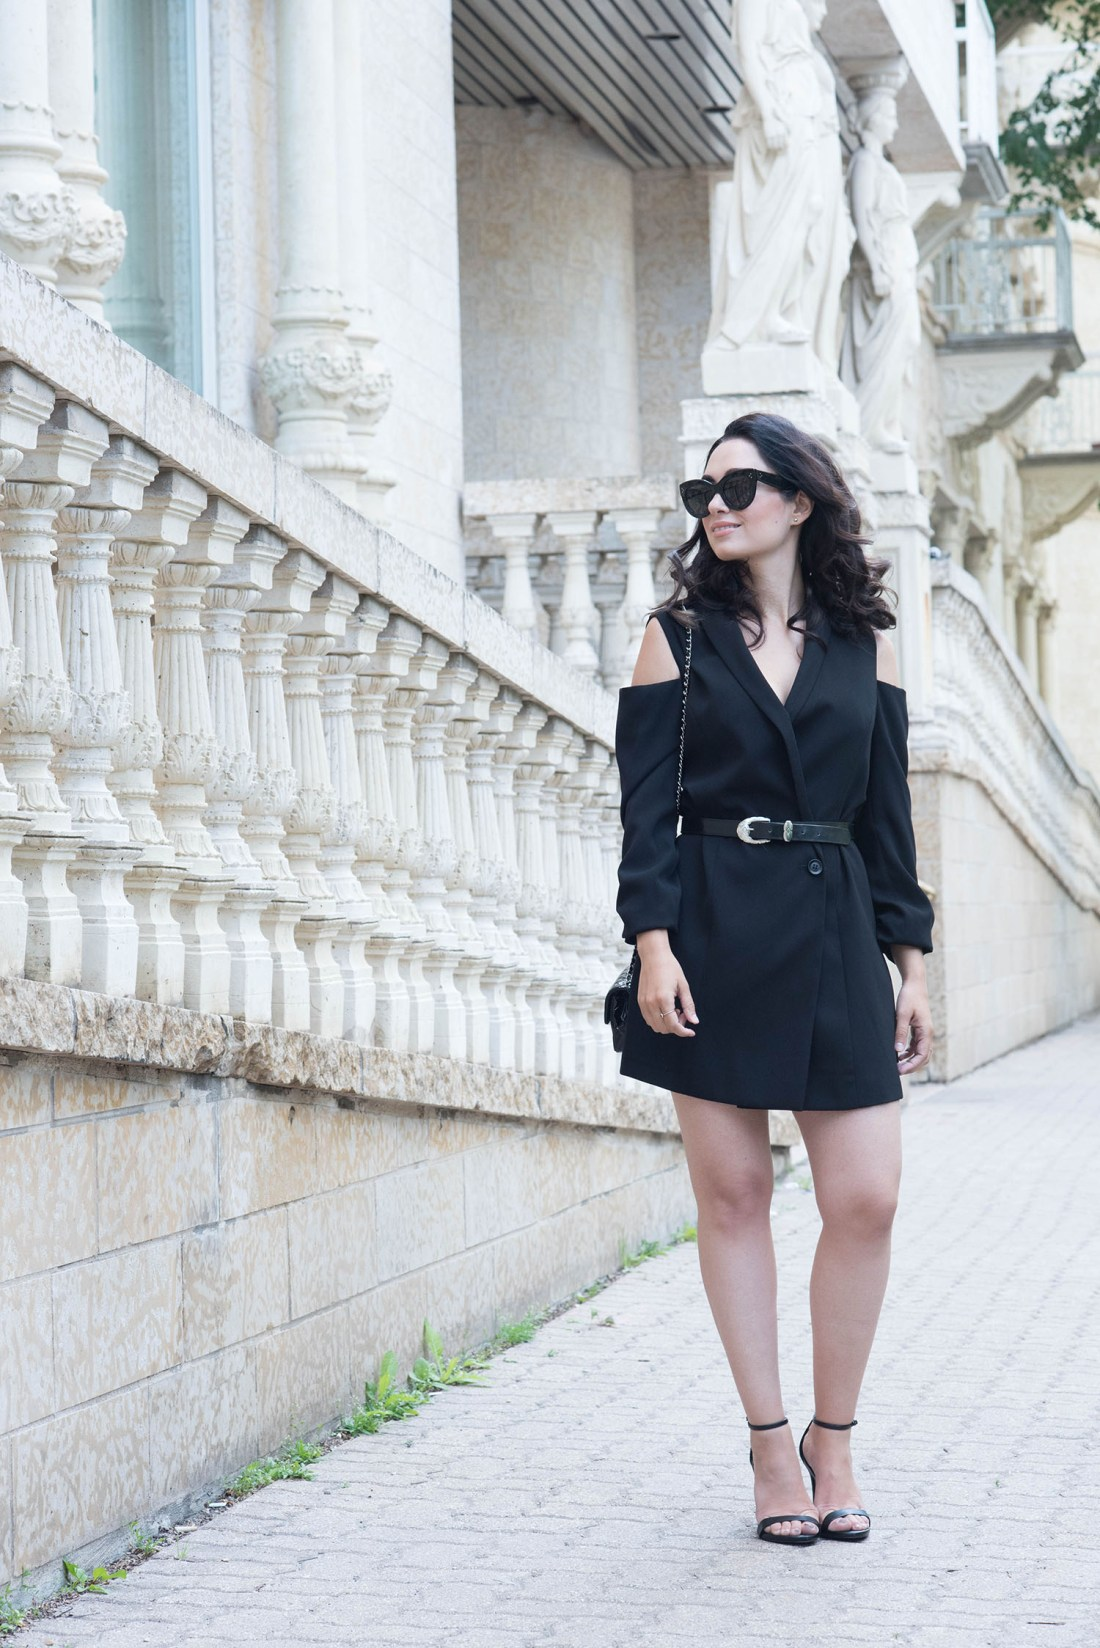 Fashion blogger Cee Fardoe of Coco & Vera wears and Ever New cold shoulder dress, vintage belt and Steve Madden Stecy sandals